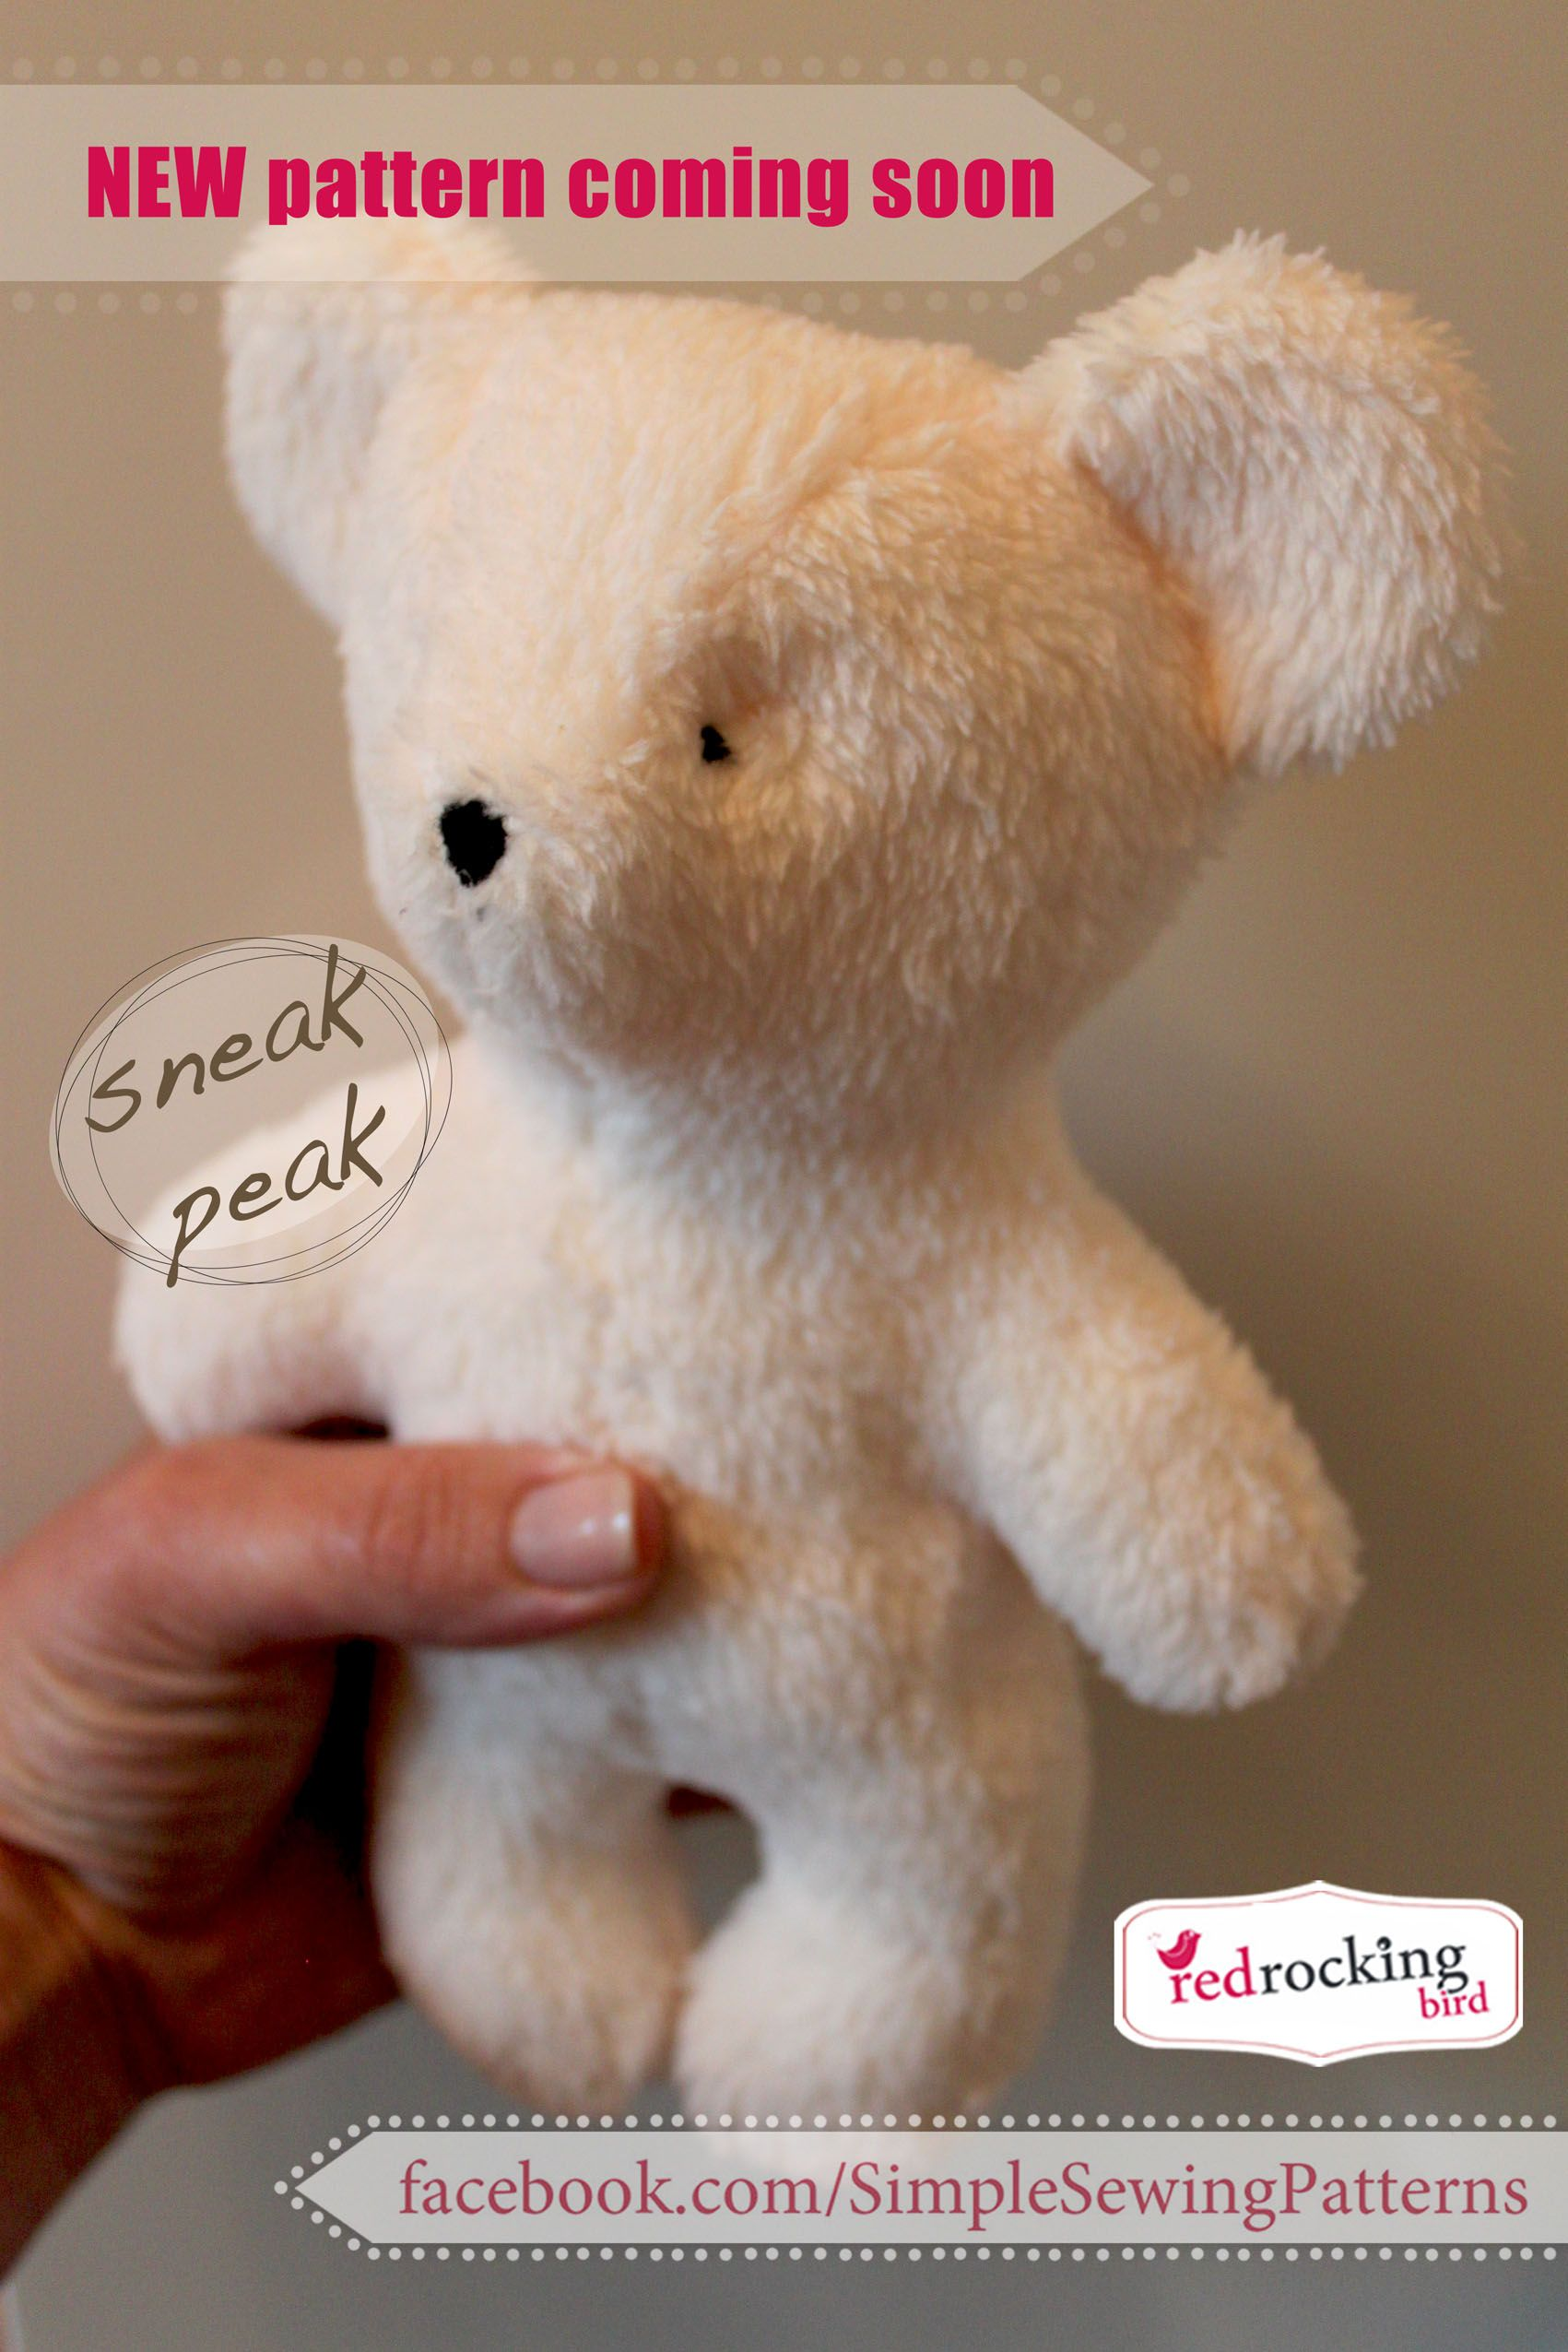 Teddy bear sewing pattern really easy for beginners by red teddy bear sewing pattern really easy for beginners by red rocking bird jeuxipadfo Choice Image